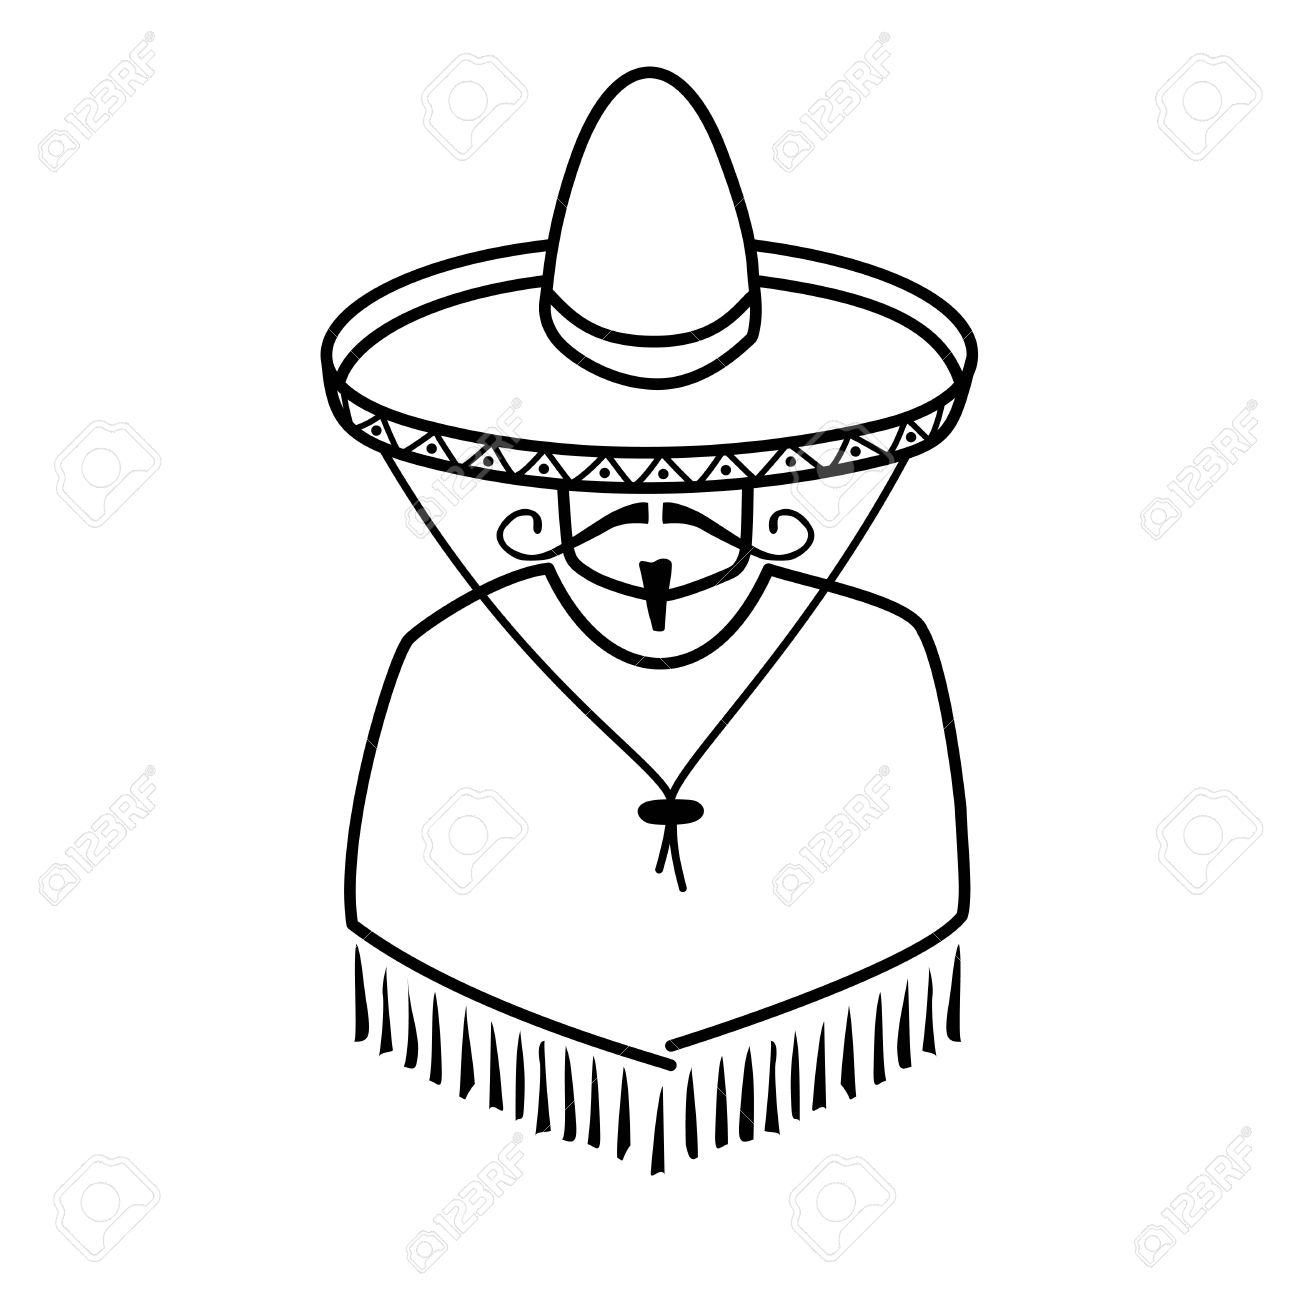 1300x1300 Illustration Of Mexican In Sombrero On White Background Royalty